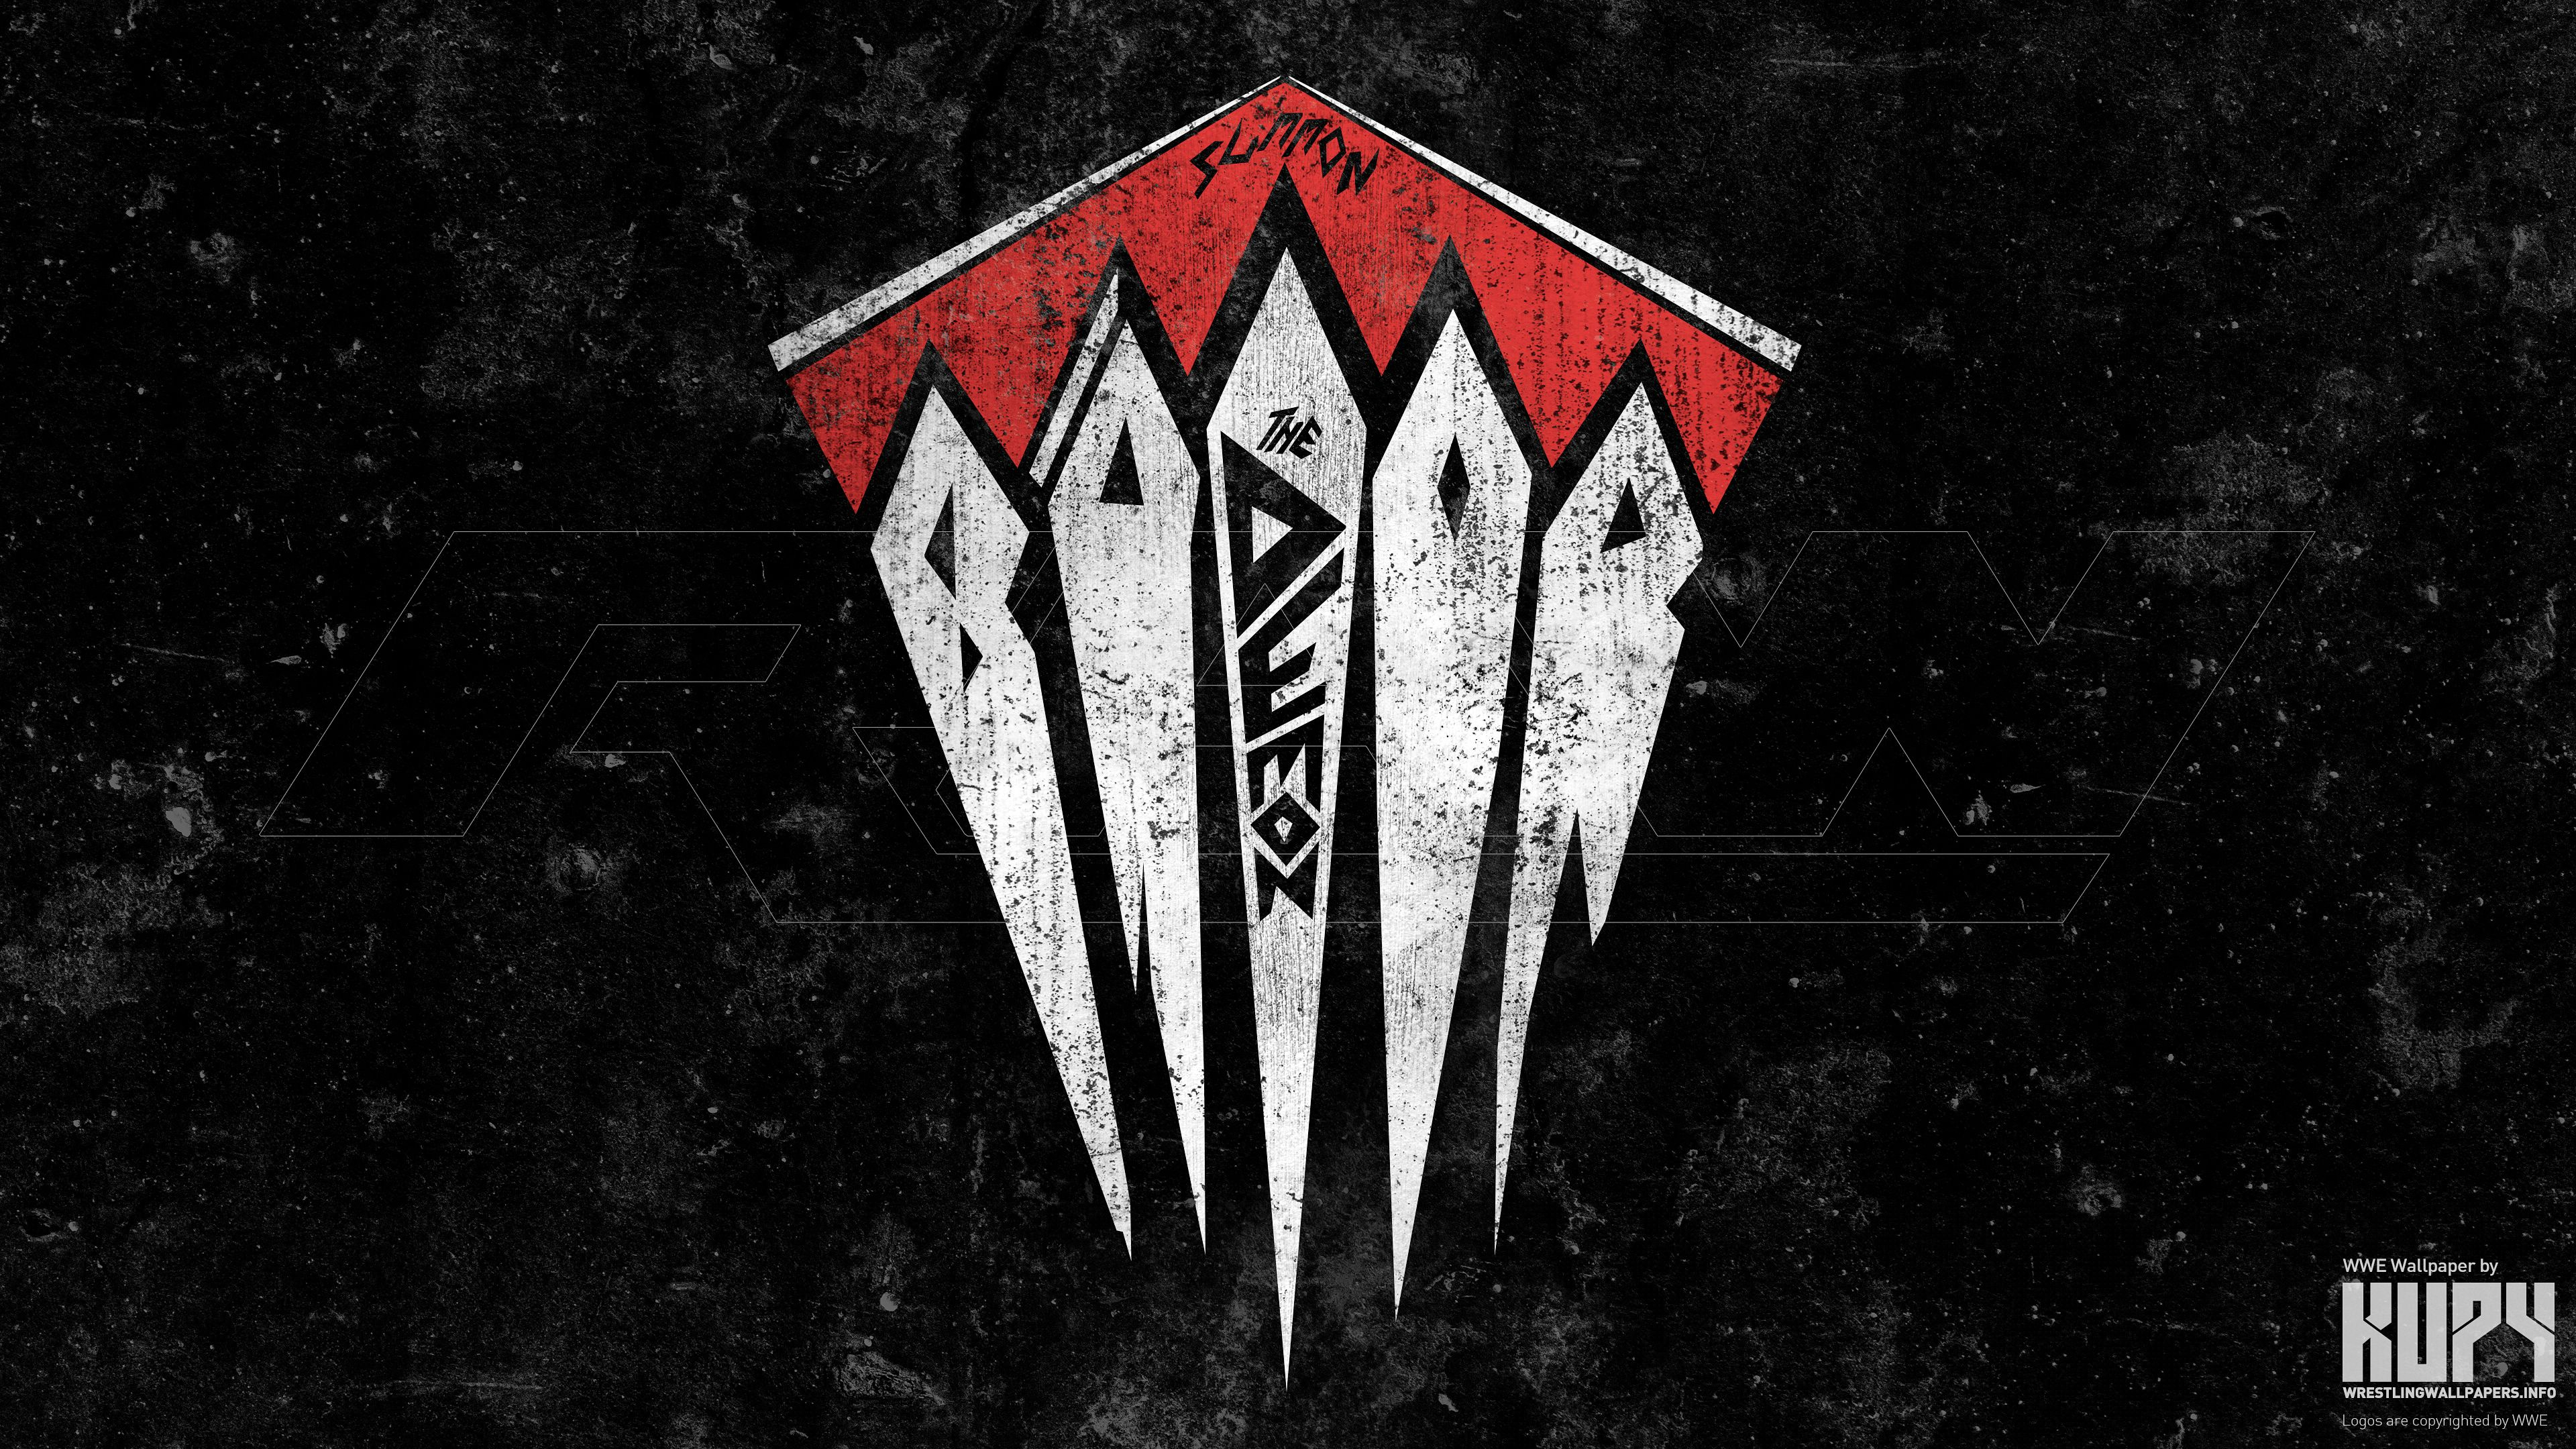 WWE Finn Balor's teeth Logo Wwe logo, Finn balor logo